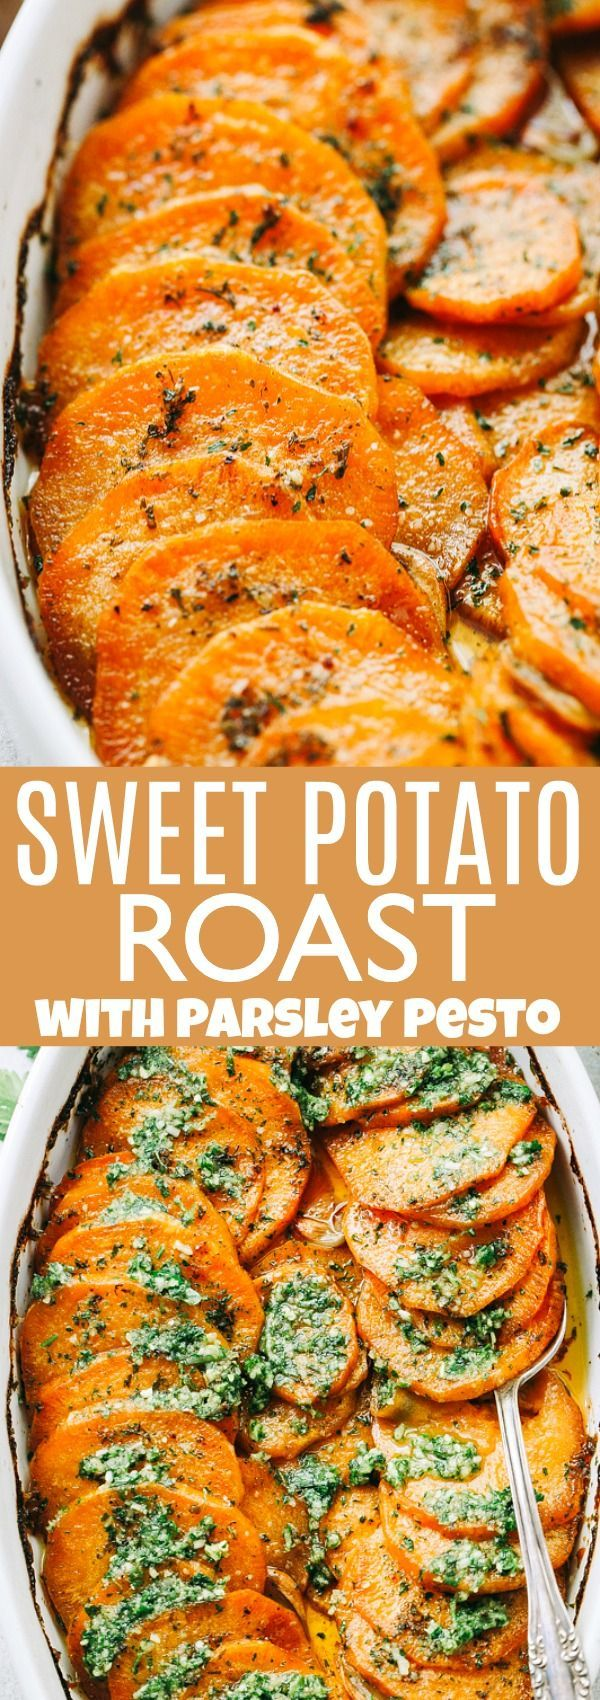 Sweet Potato Roast - Smoky and sweet thinly sliced sweet potatoes served with parsley pesto. These are going to be your new favorite side dish. #sweetpotatoes #thanksgiving #vegetarian #diethood #chickensidedishes